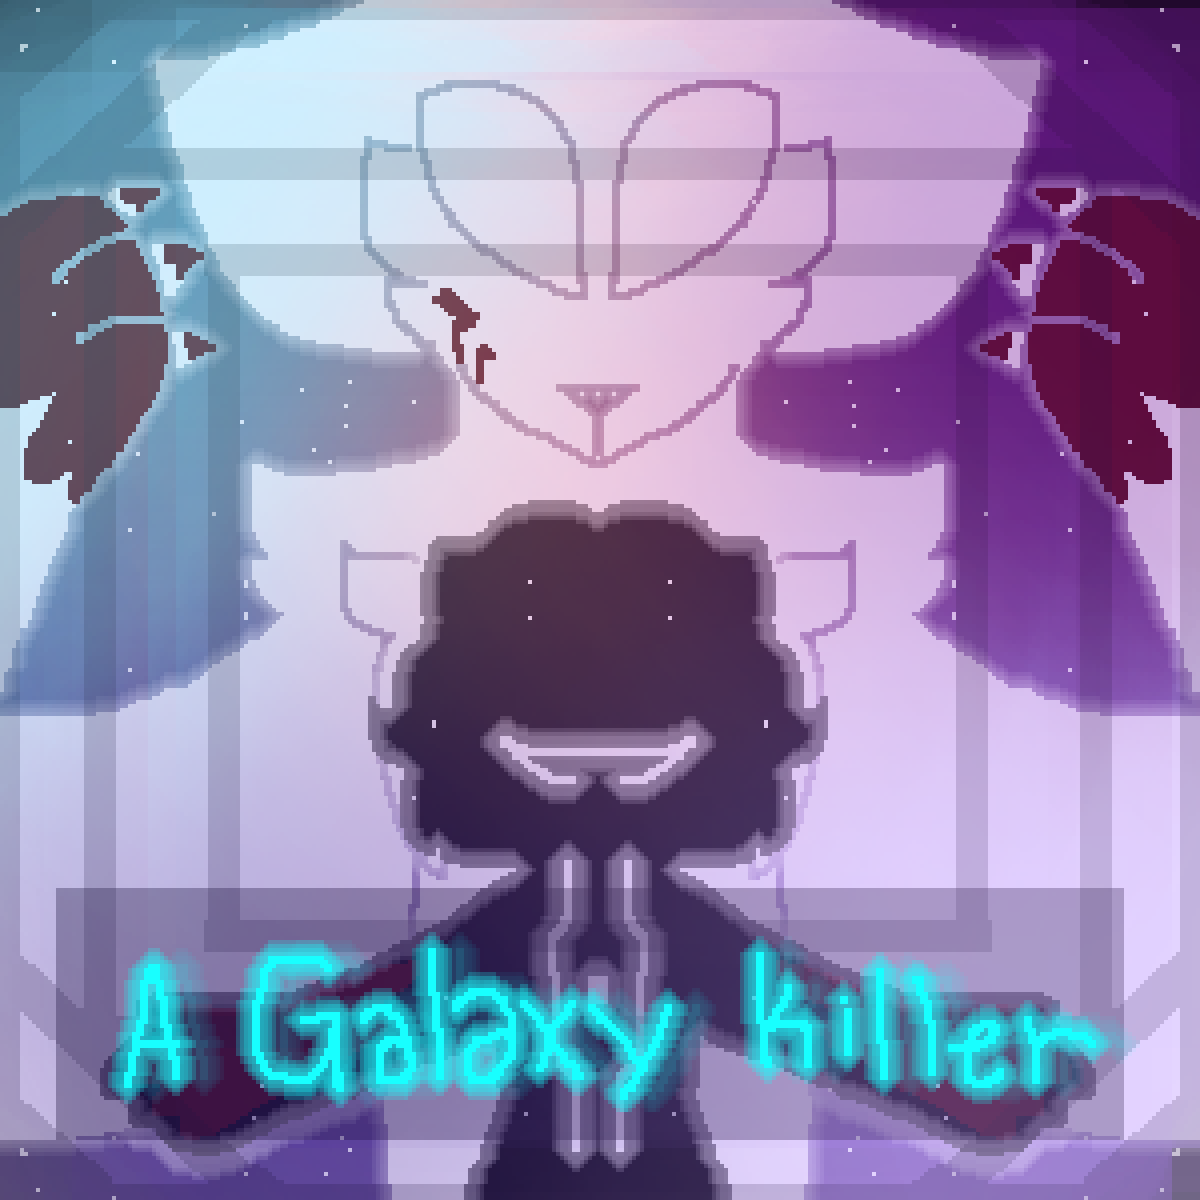 main-image-A….galaxy..Killer  by Vessel